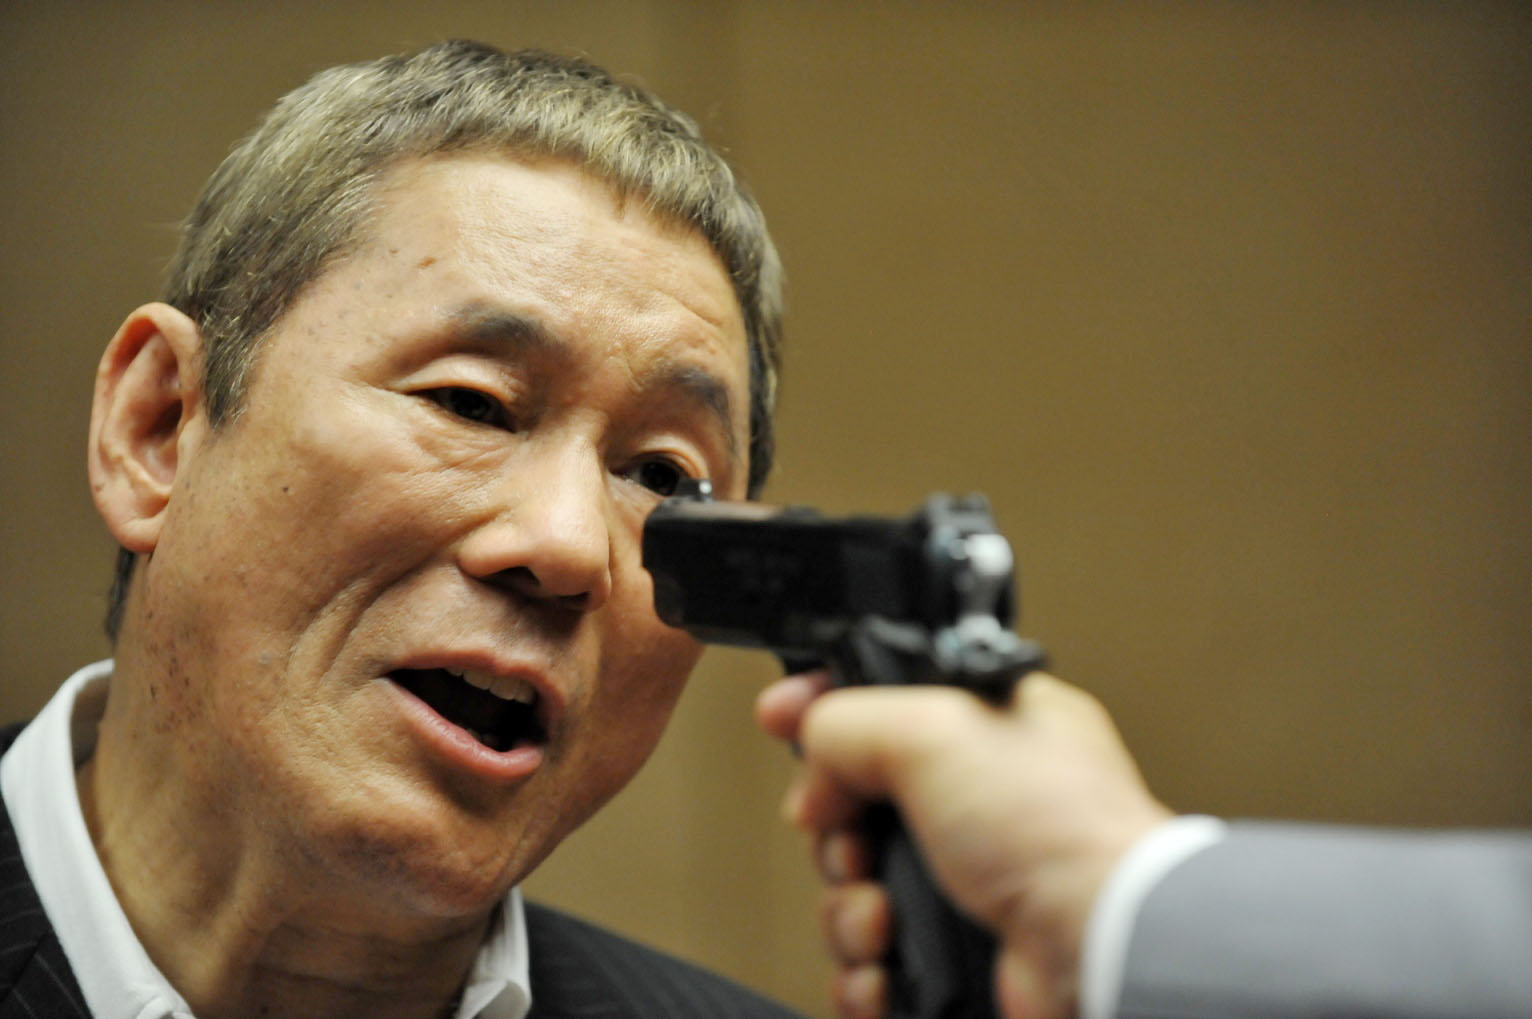 Make believe: Takeshi Kitano in a still from his latest film 'Outrage Beyond' (2012). Kitano often uses violence in his films and has admitted that the basis of his humor is bullying, but everyone understands it's all in fun. | KYODO